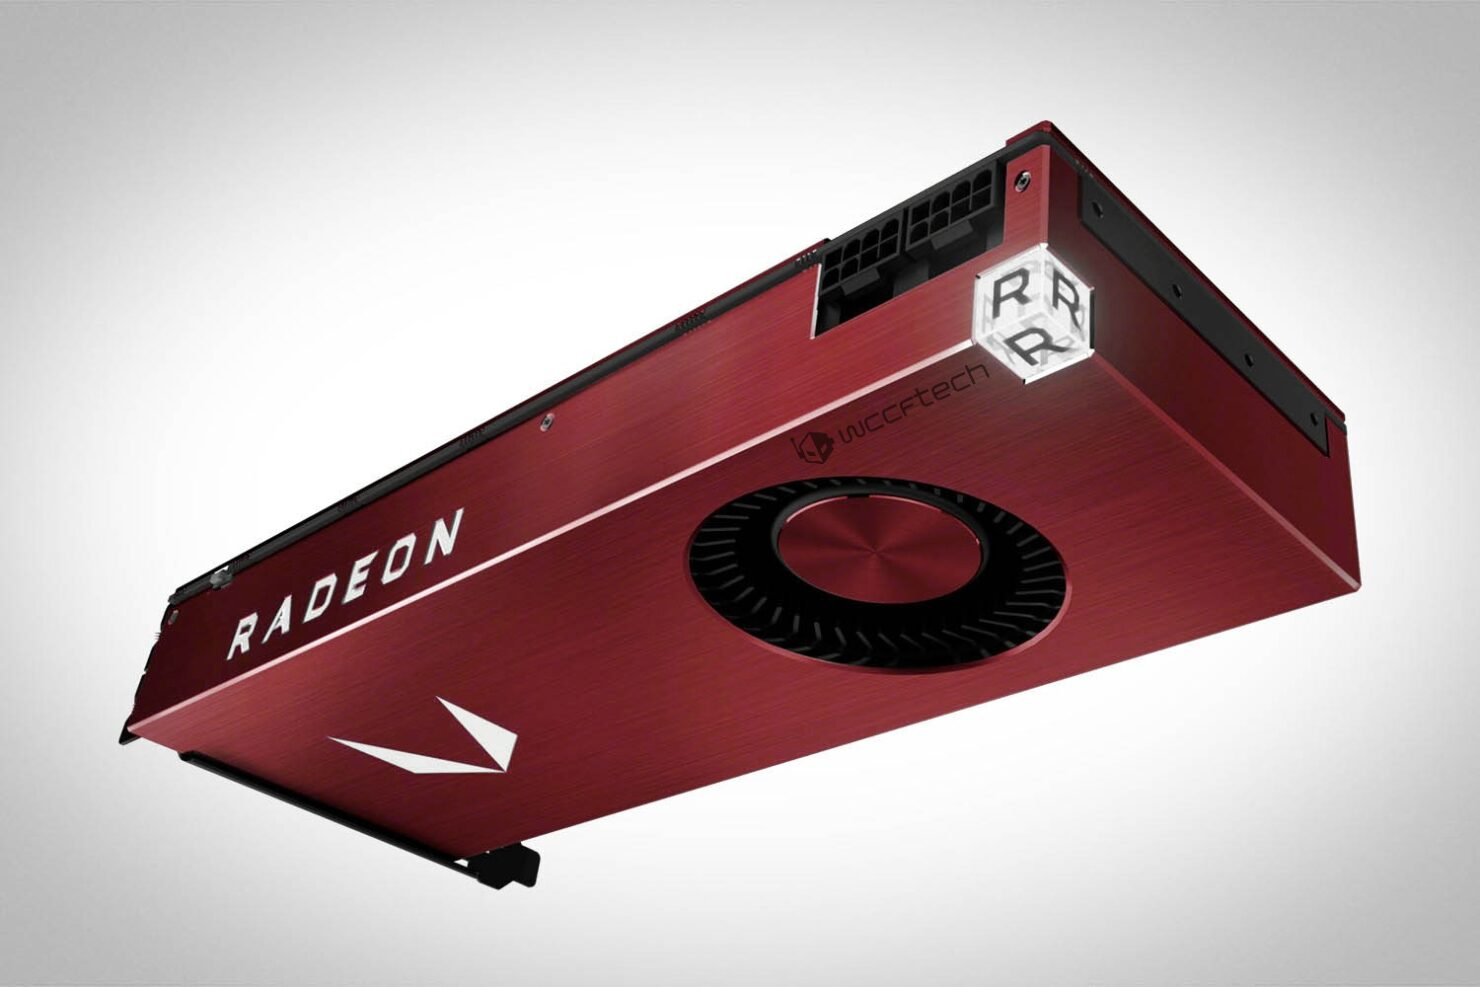 amd-radeon-rx-vega-air-cooled-oxblood-red-1-wccftech